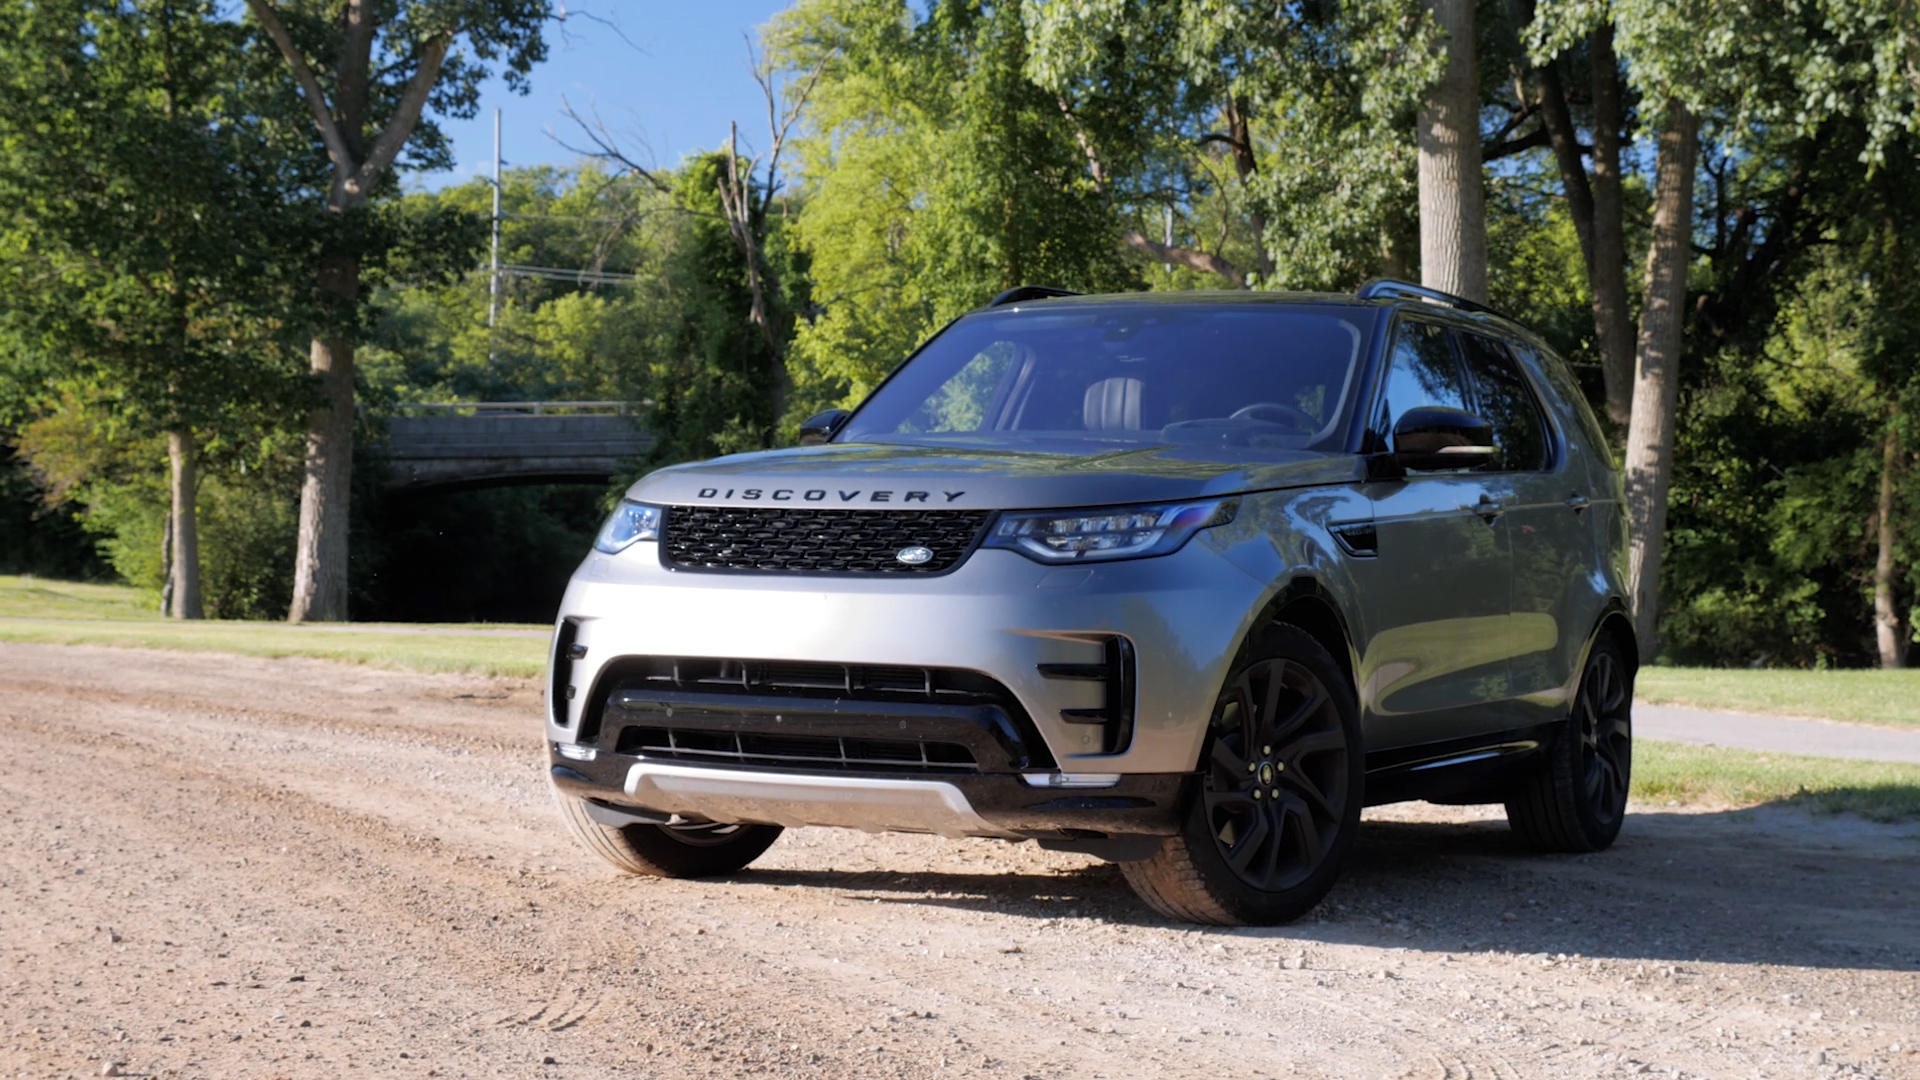 Video: Roadshow's long-term 2017 Land Rover Discovery: Bidding farewell